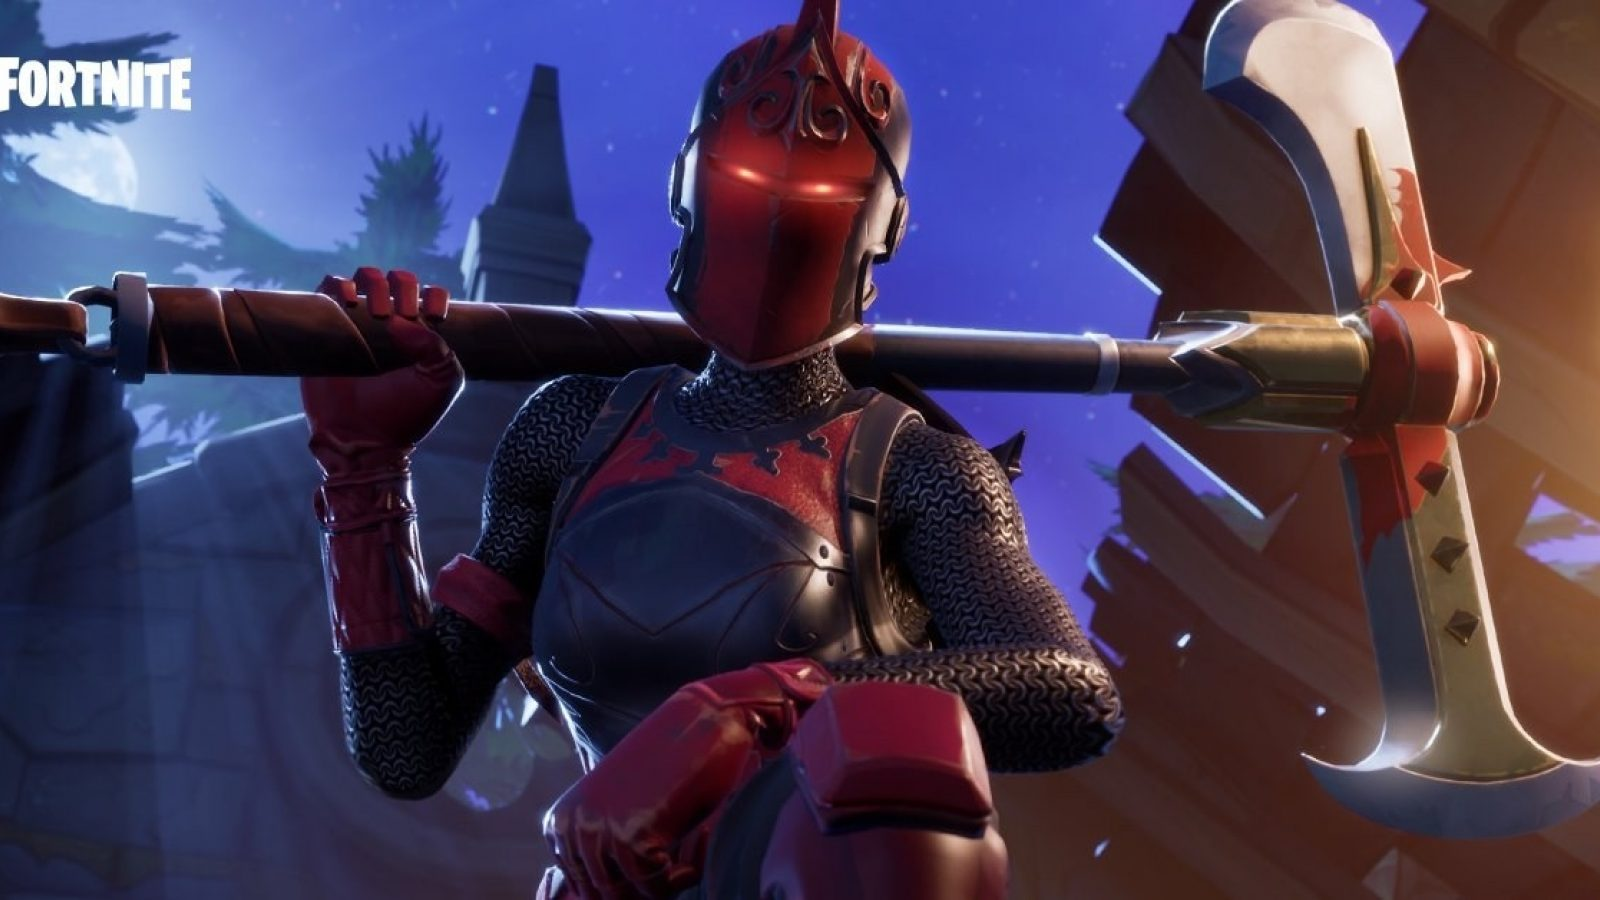 Fortnite to Re Release Rare Red Knight Skin in Item Shop and 1600x900